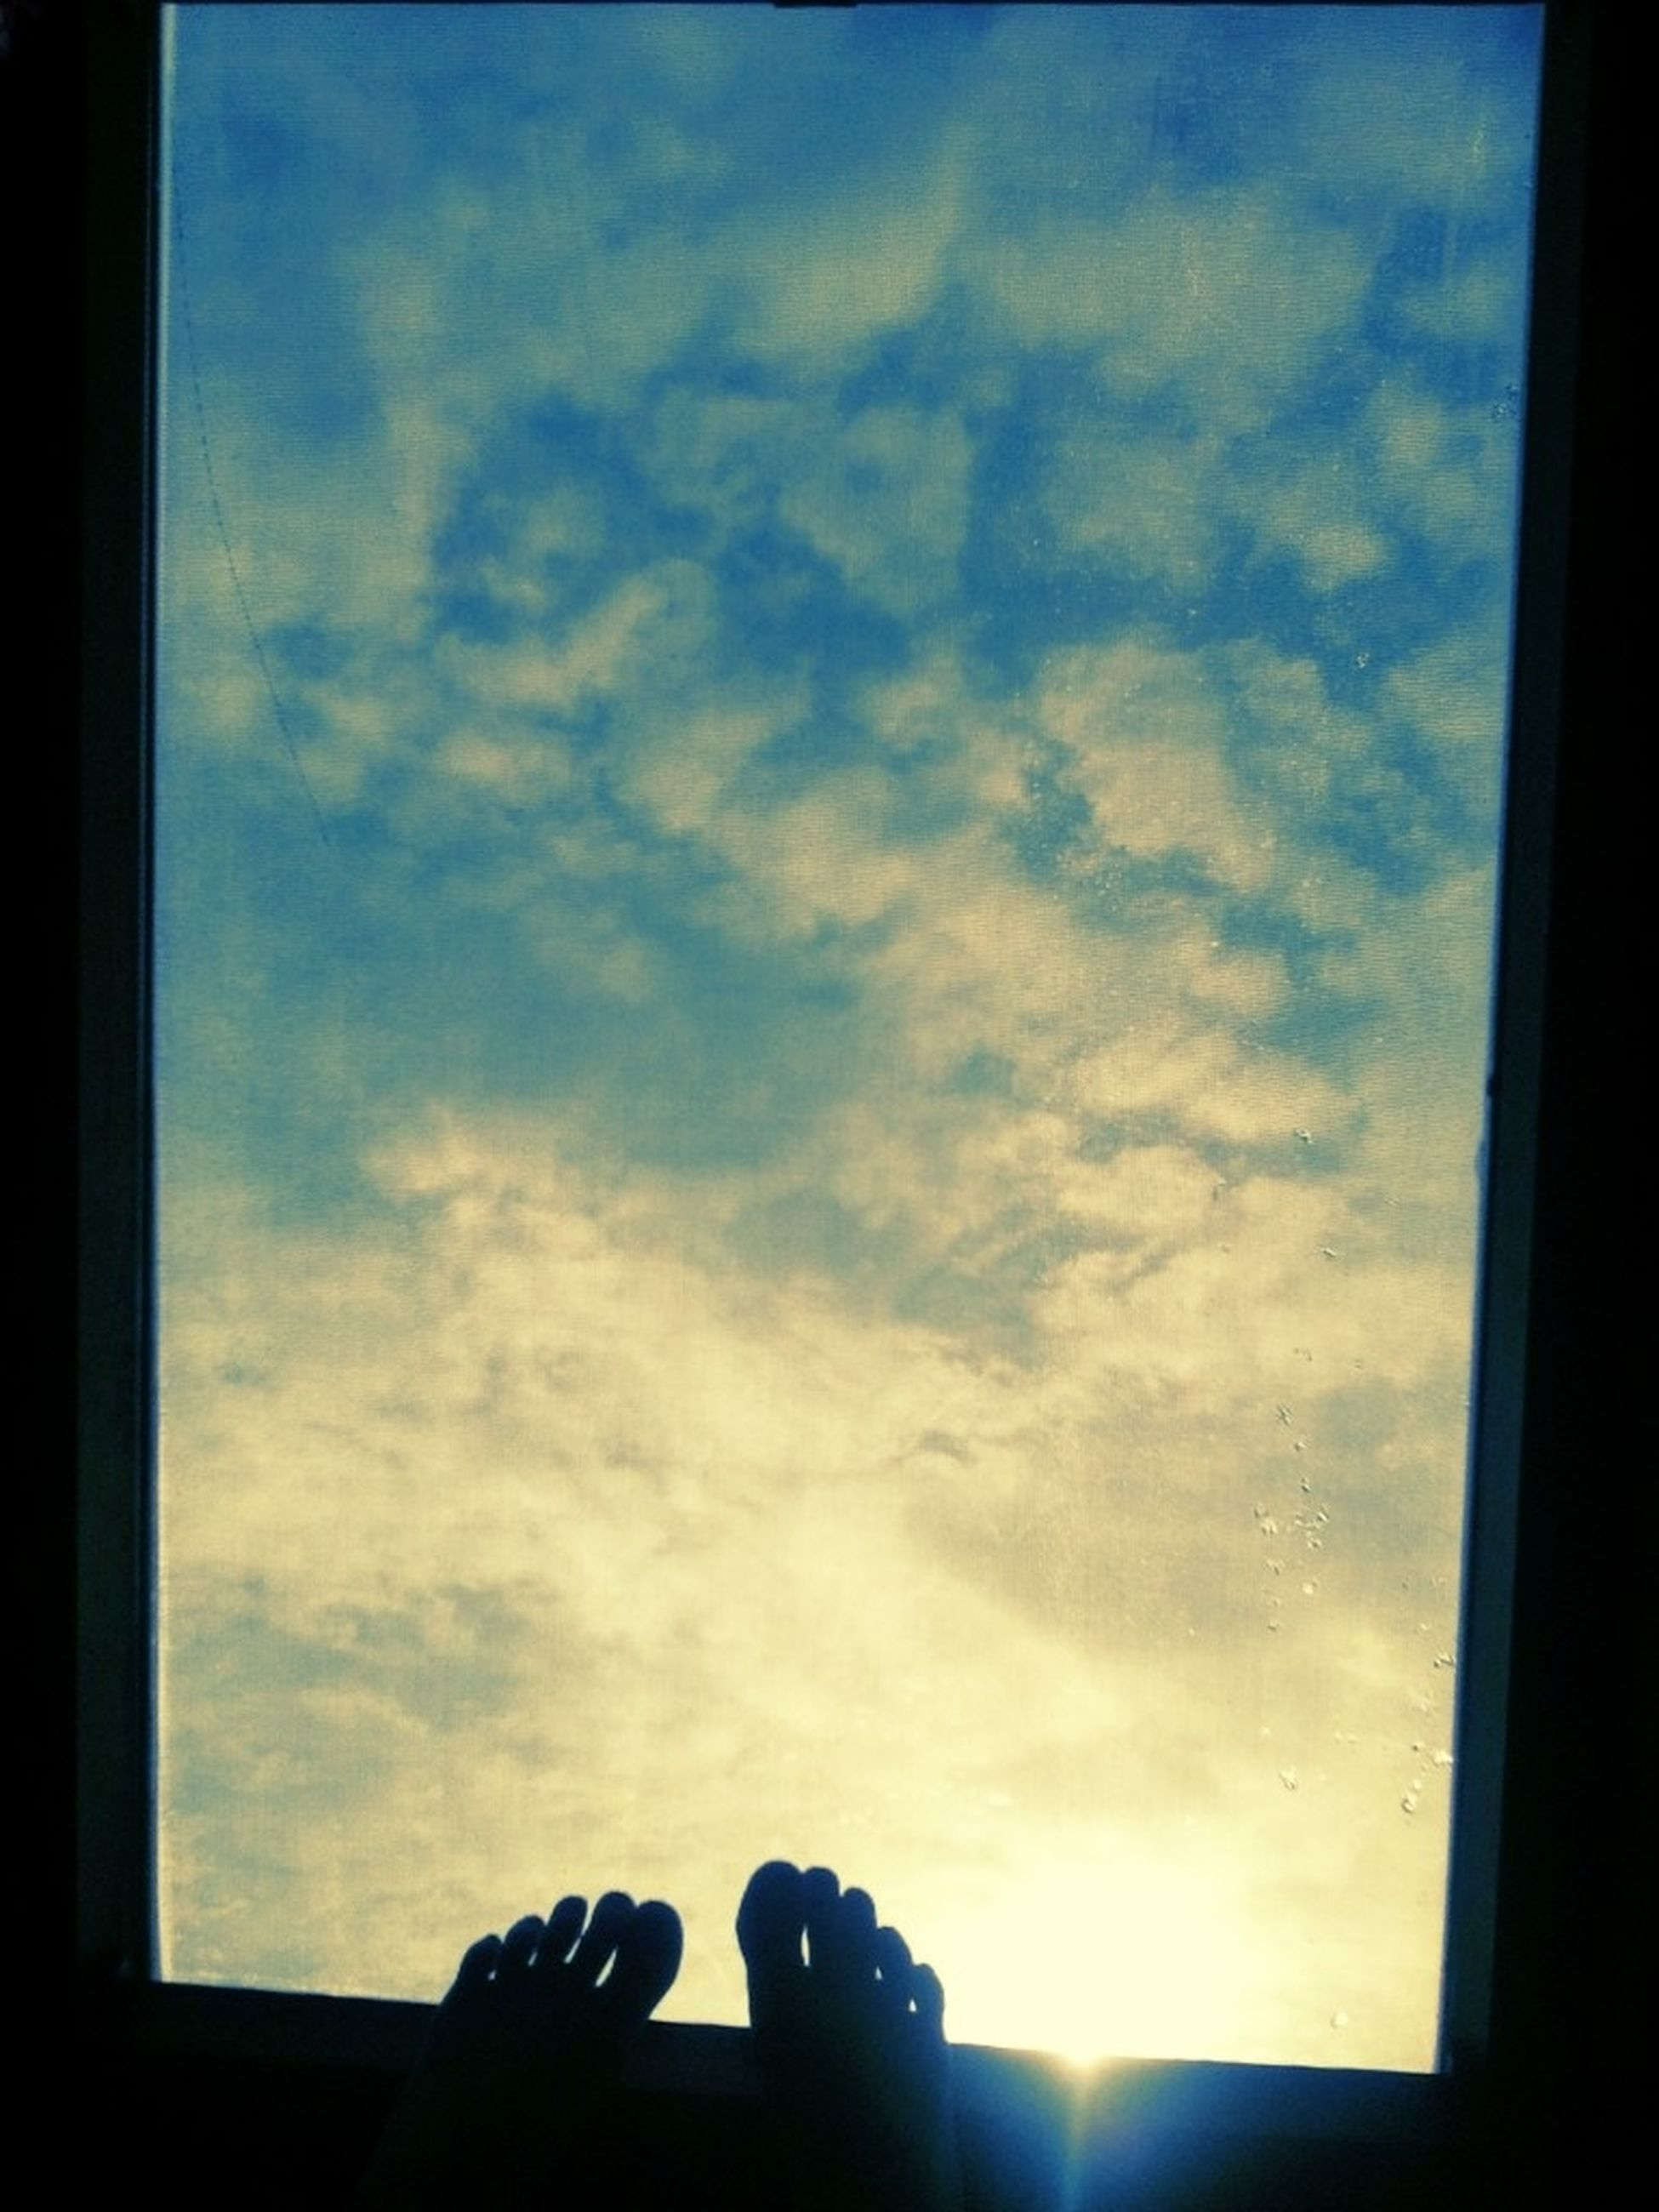 sky, silhouette, window, cloud - sky, low angle view, cloud, indoors, glass - material, built structure, cloudy, architecture, sunset, building exterior, sunlight, nature, house, transparent, auto post production filter, no people, beauty in nature